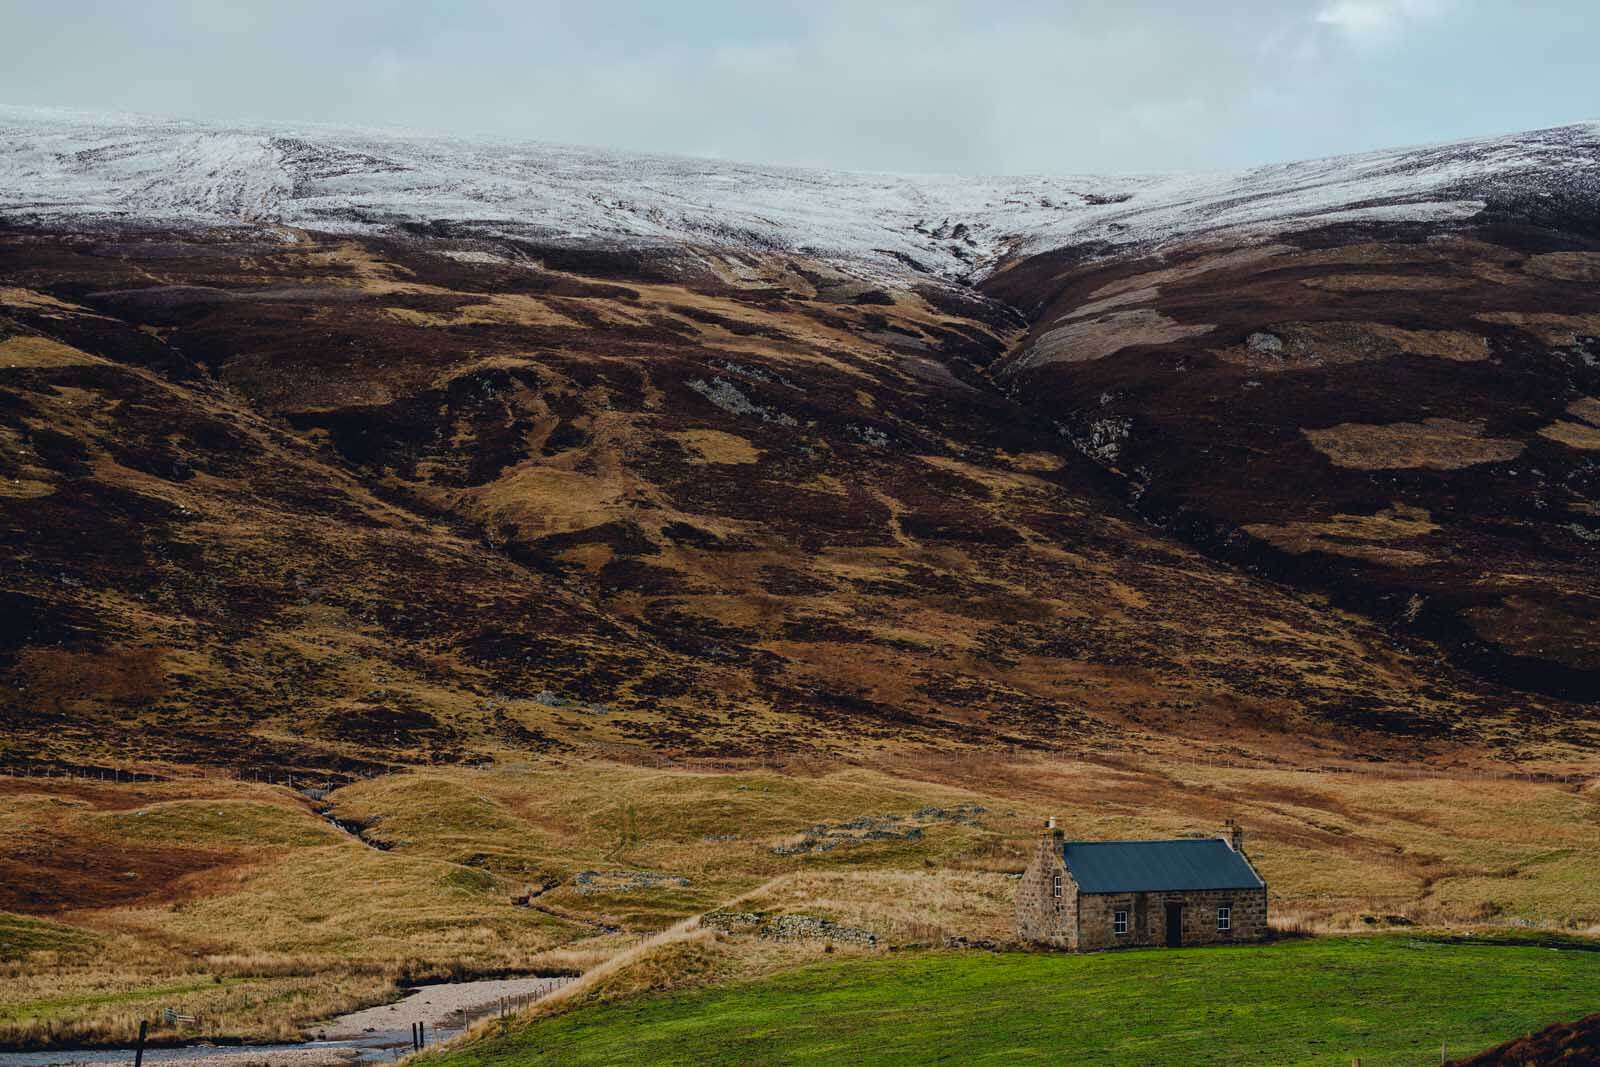 cute mountain house in Cairngorms National Park Scotland